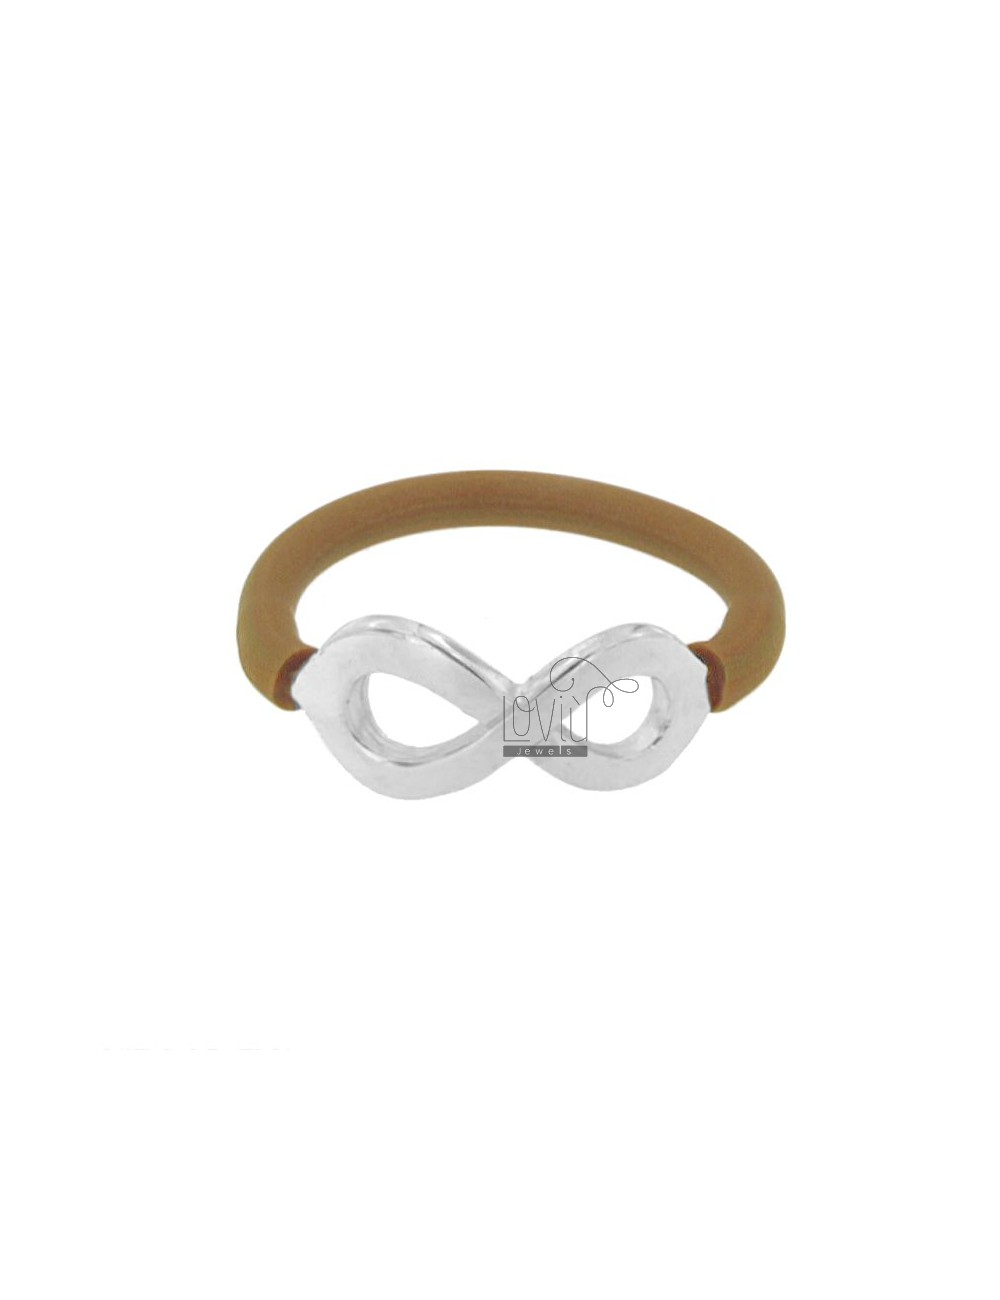 RING IN SILICON BRONZE BROWN WITH INFINITY SYMBOL IN TIT AG 925